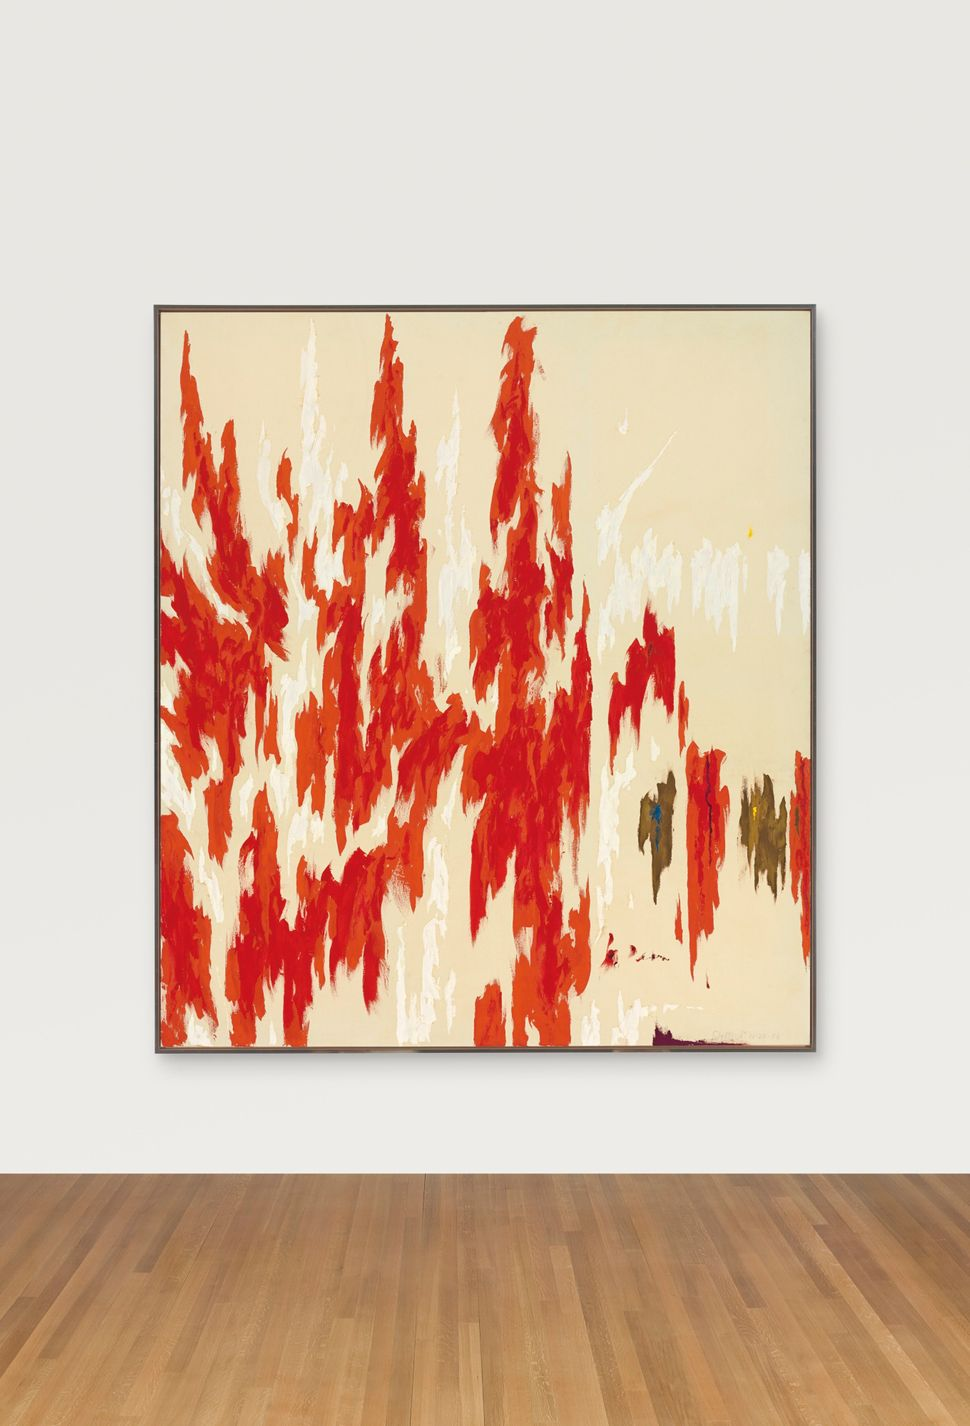 Clyfford Still (1904-1980), PH-1033, signed and dated 'Clyfford 11-29-76' (lower right); signed again and titled 'Clyfford PH